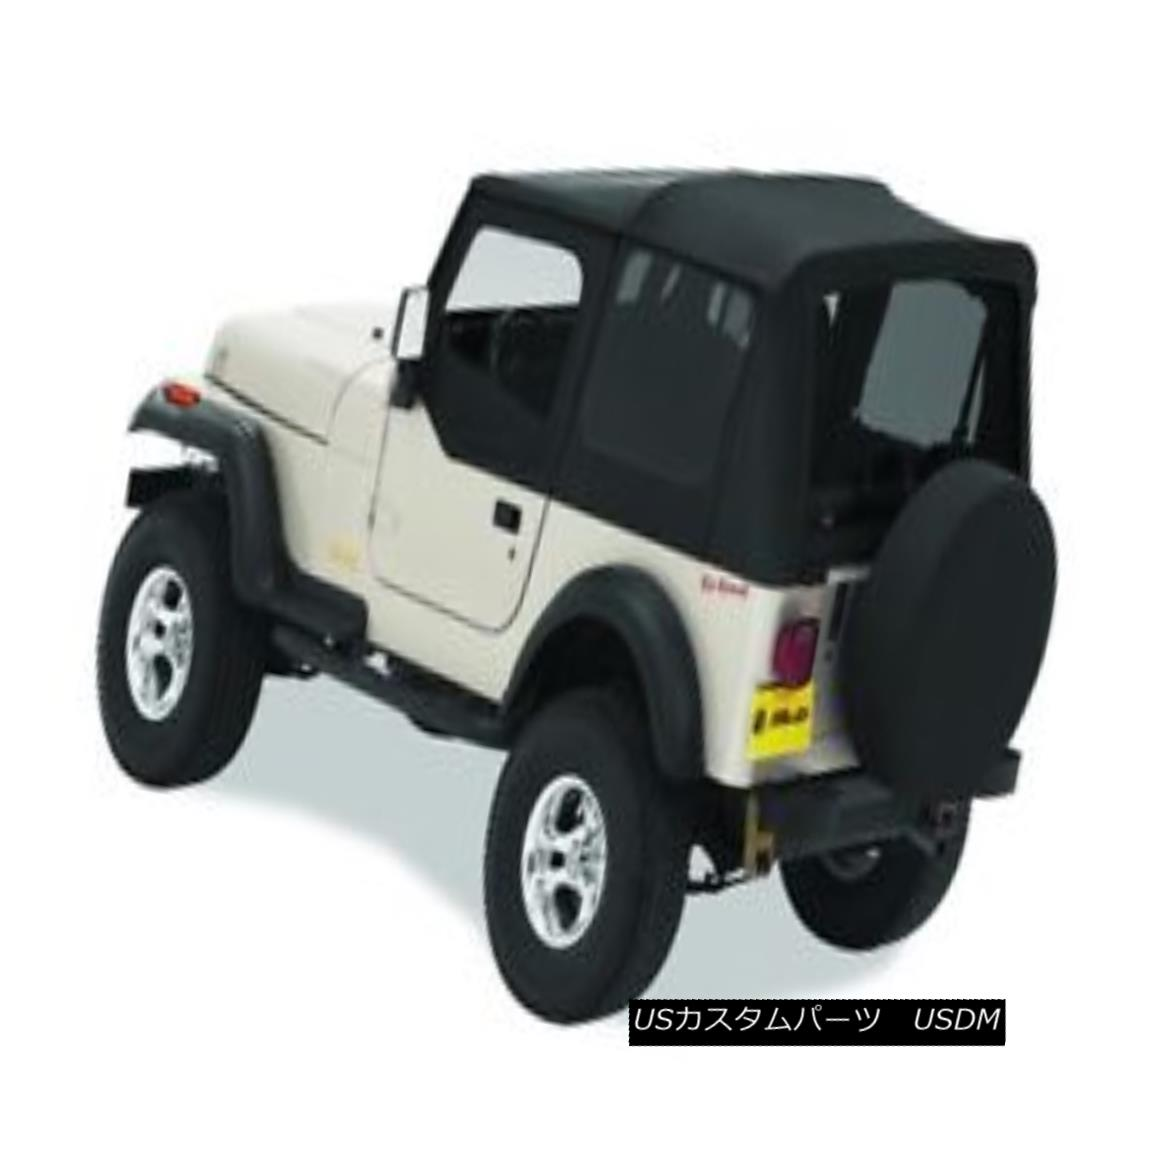 幌・ソフトトップ Bestop 51120-15 Jeep Replace-a-Top Soft Top Black Denim Bestop 51120-15 Jeep Replace-a-Topソフトトップブラックデニム